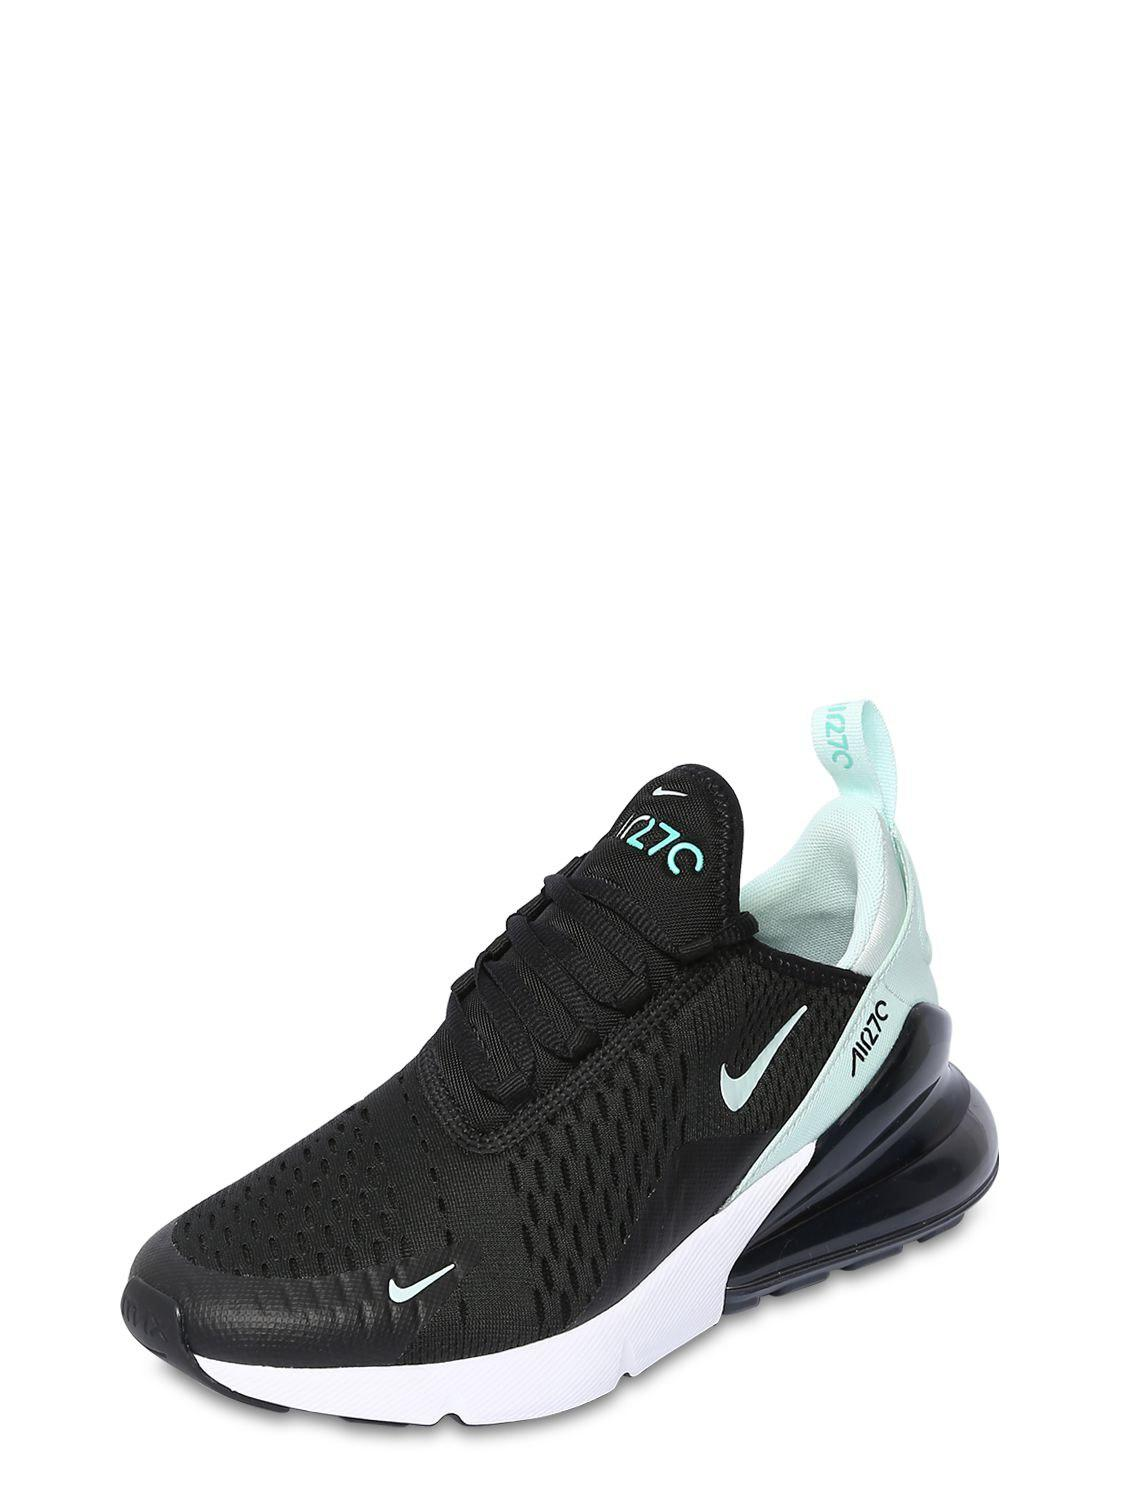 new product 7281d 2b258 Lyst - Nike Air Max 270 Sneakers in Black